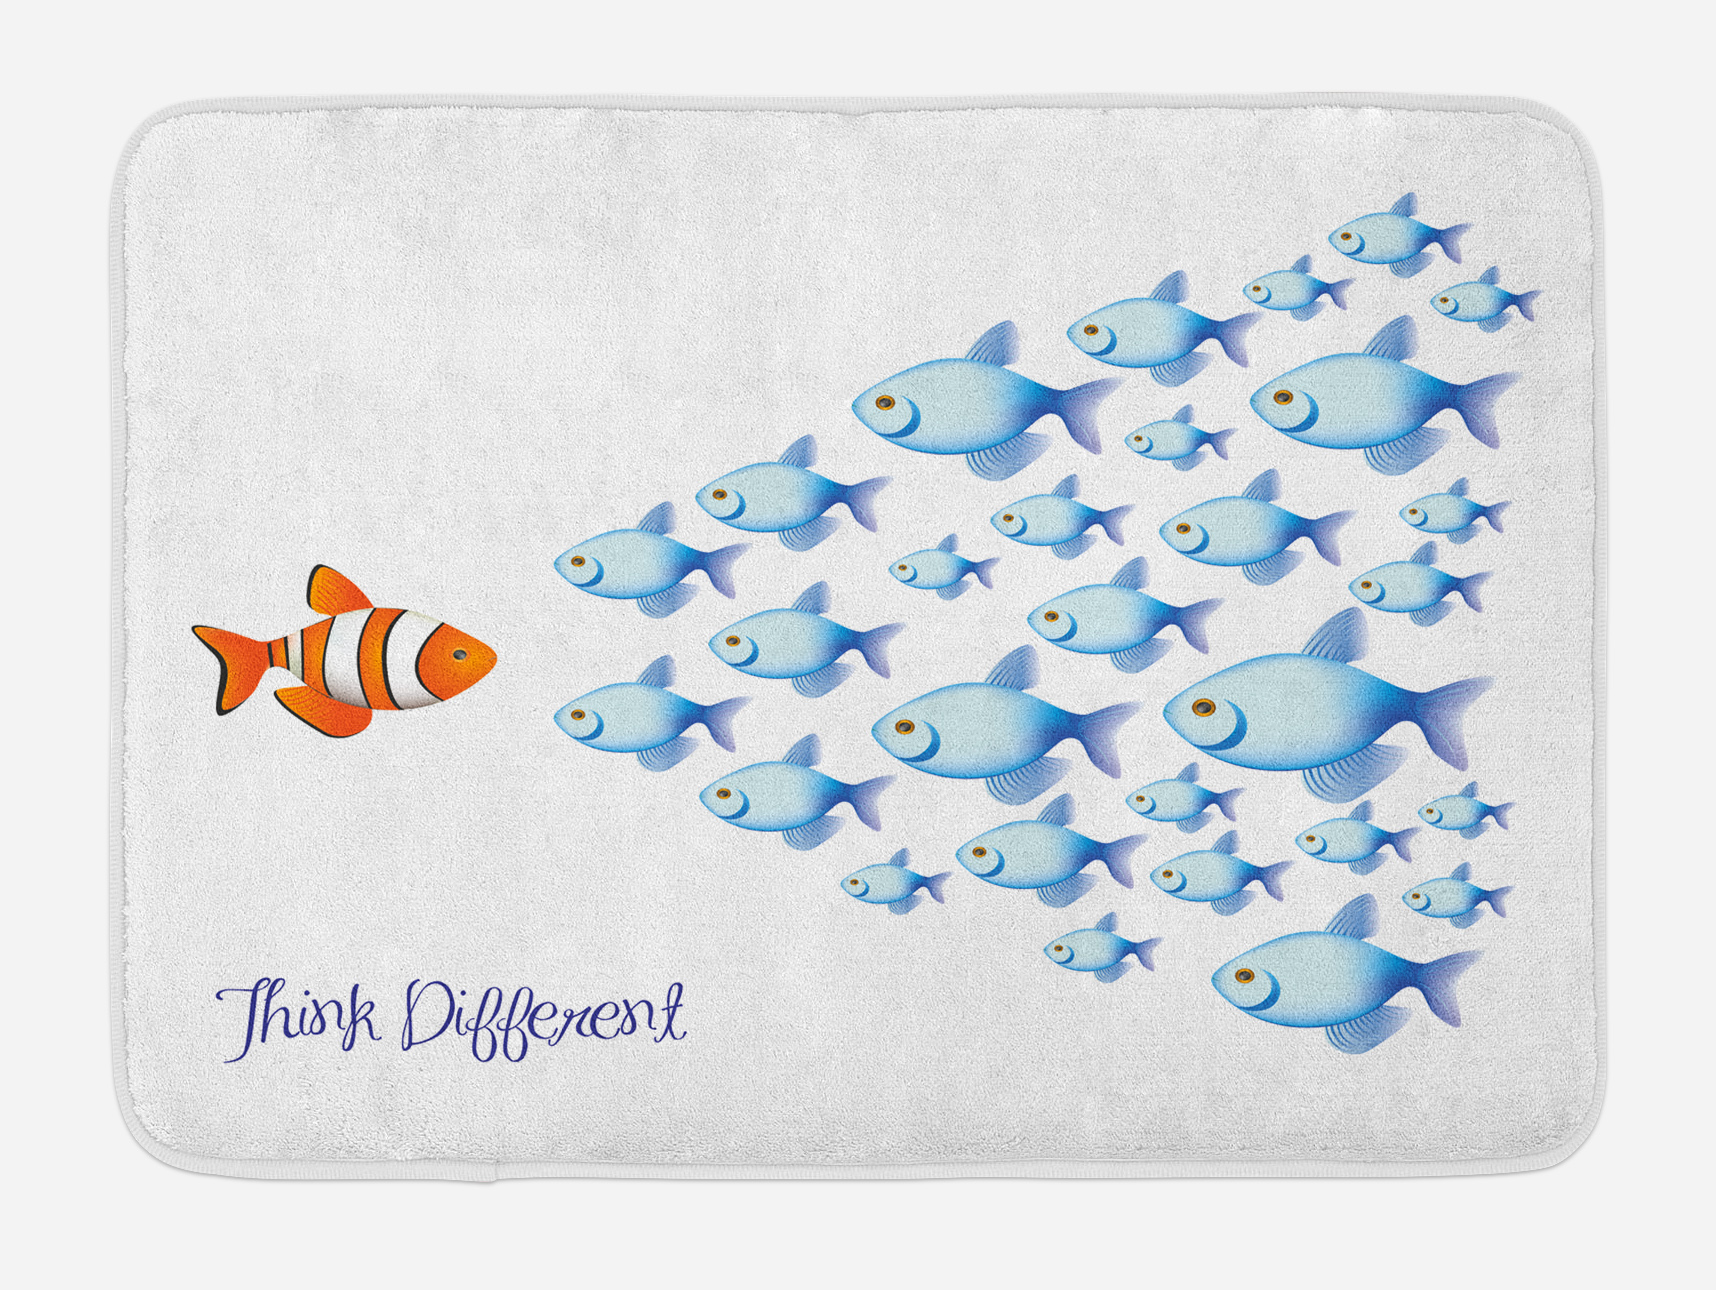 Kids Bath Mat, Quote with Outsider Fish against All the Others Motivational Inspirational... by 3decor llc